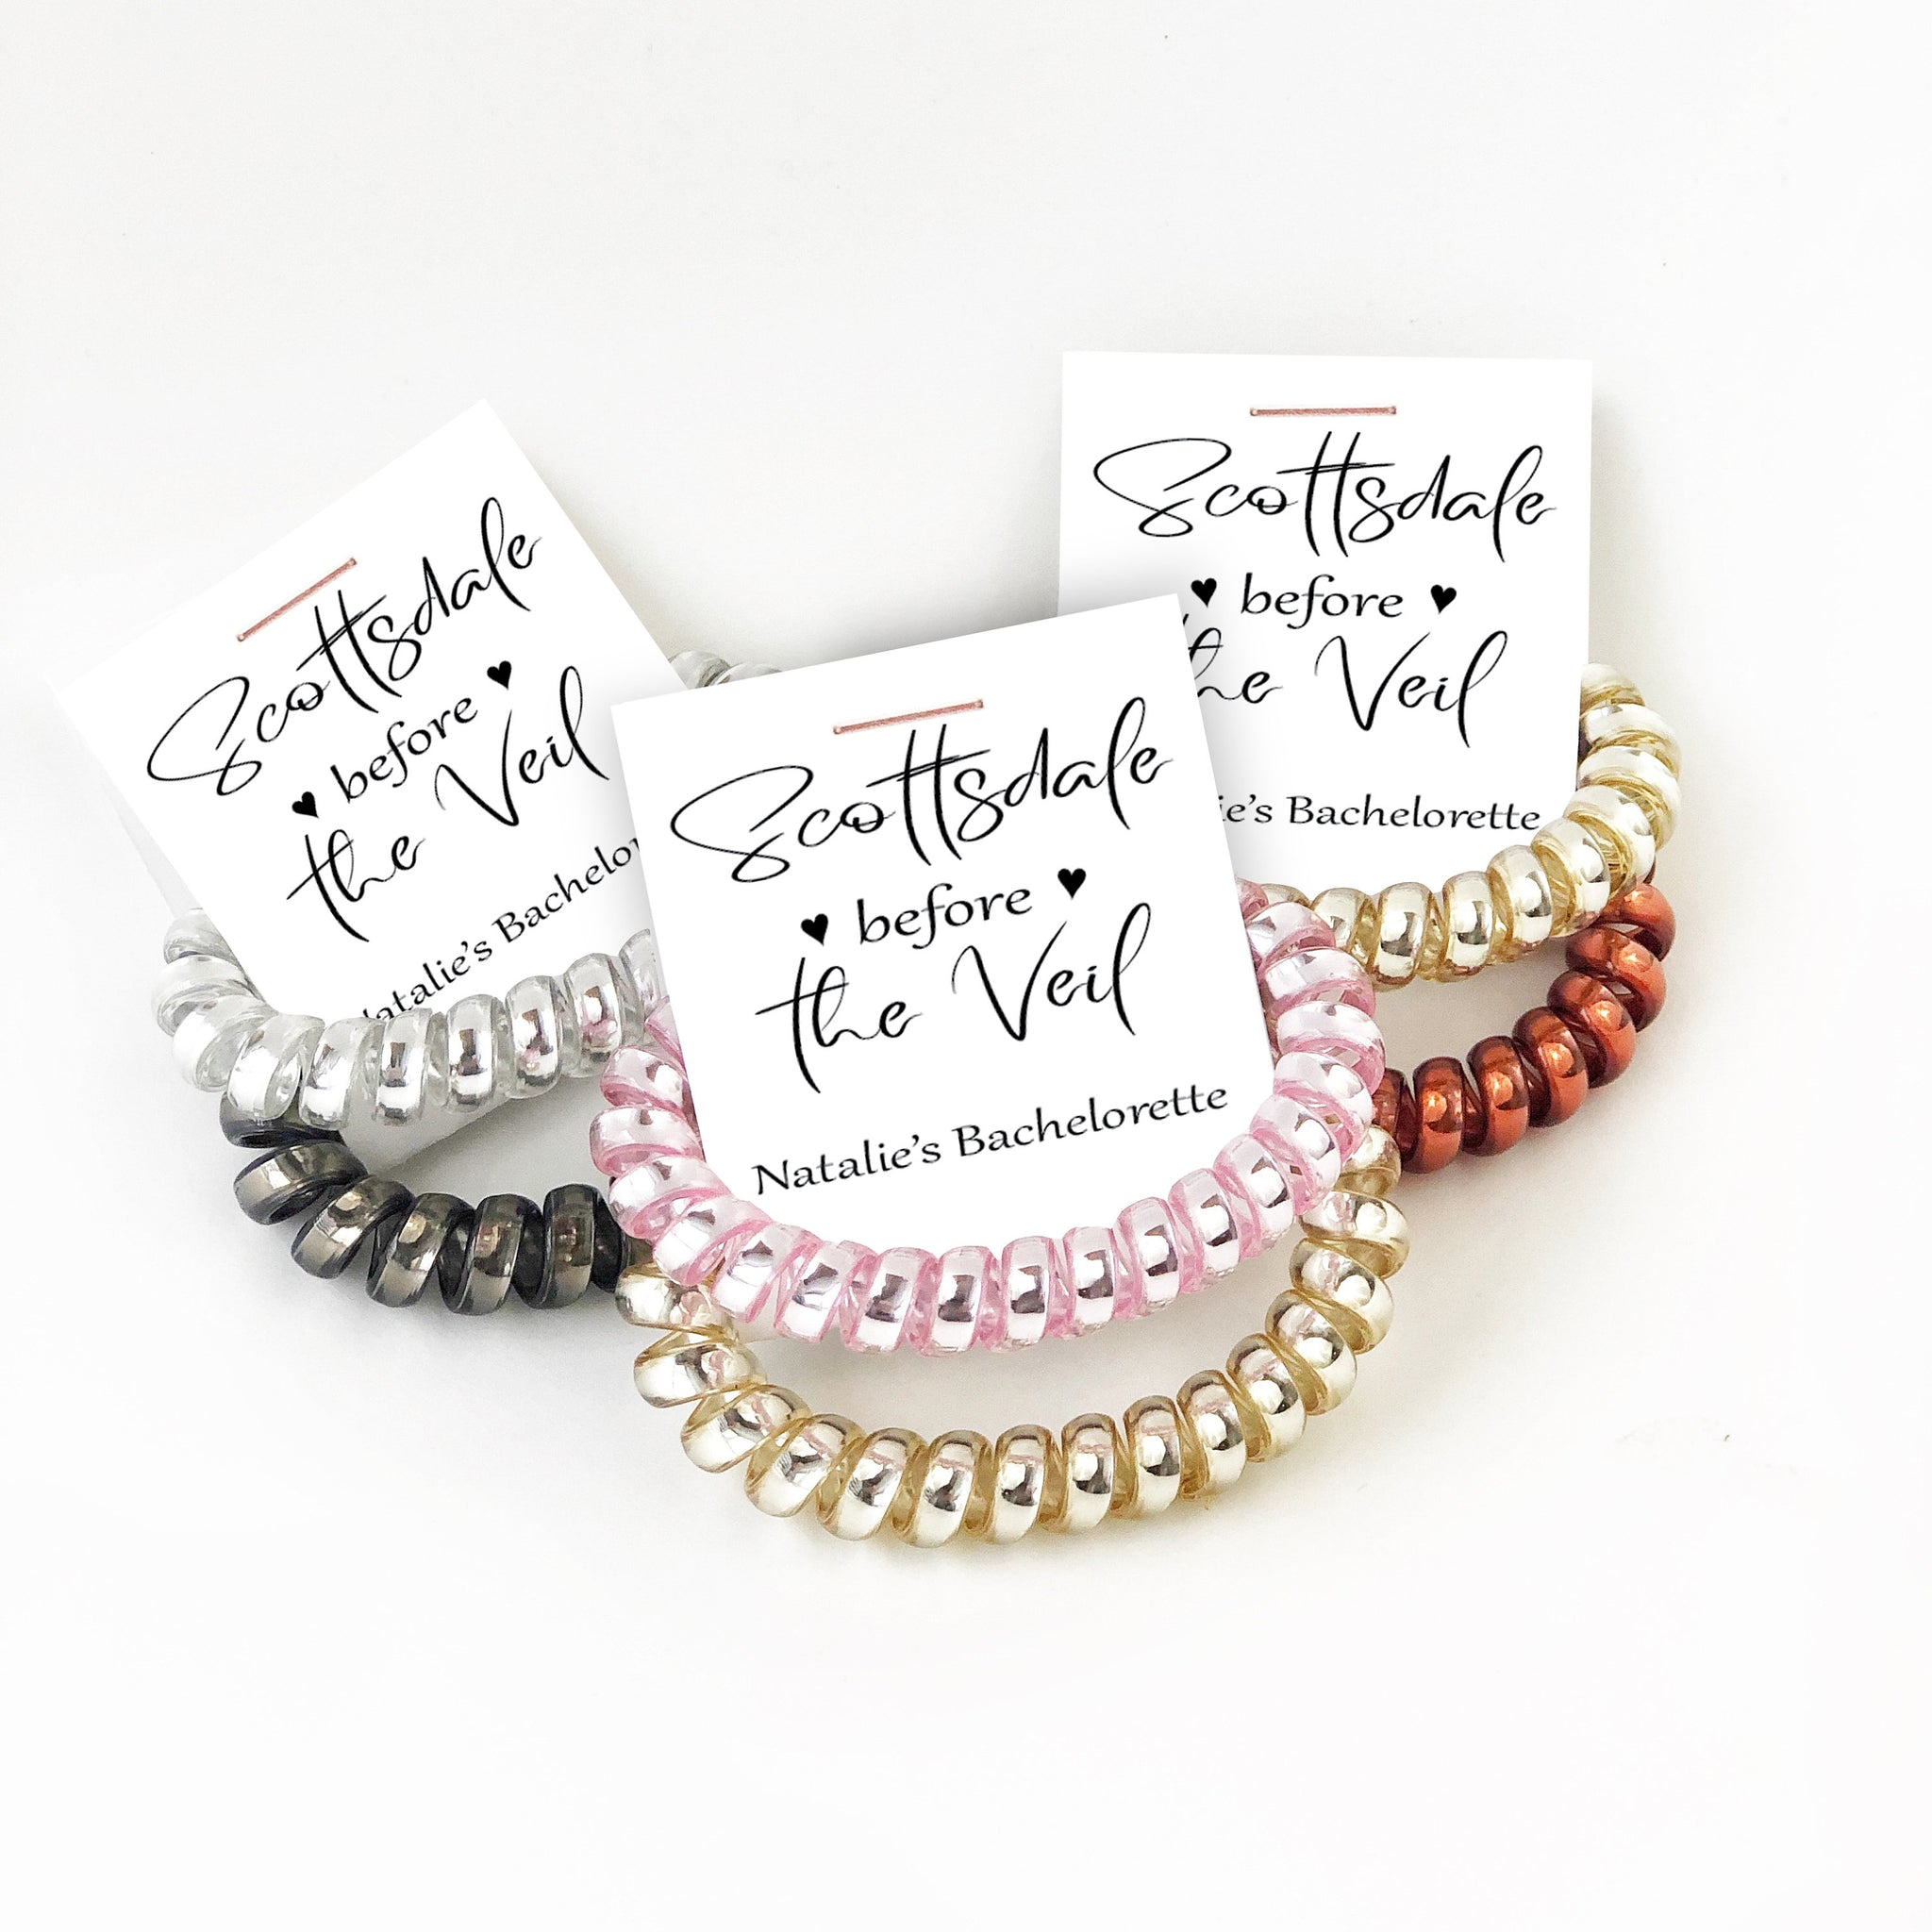 Scottsdale Bachelorette Party Favors, Spiral Hair Tie Favors, Scottsdale Before The Veil Bachelorette, Arizona Bachelorette - @PlumPolkaDot